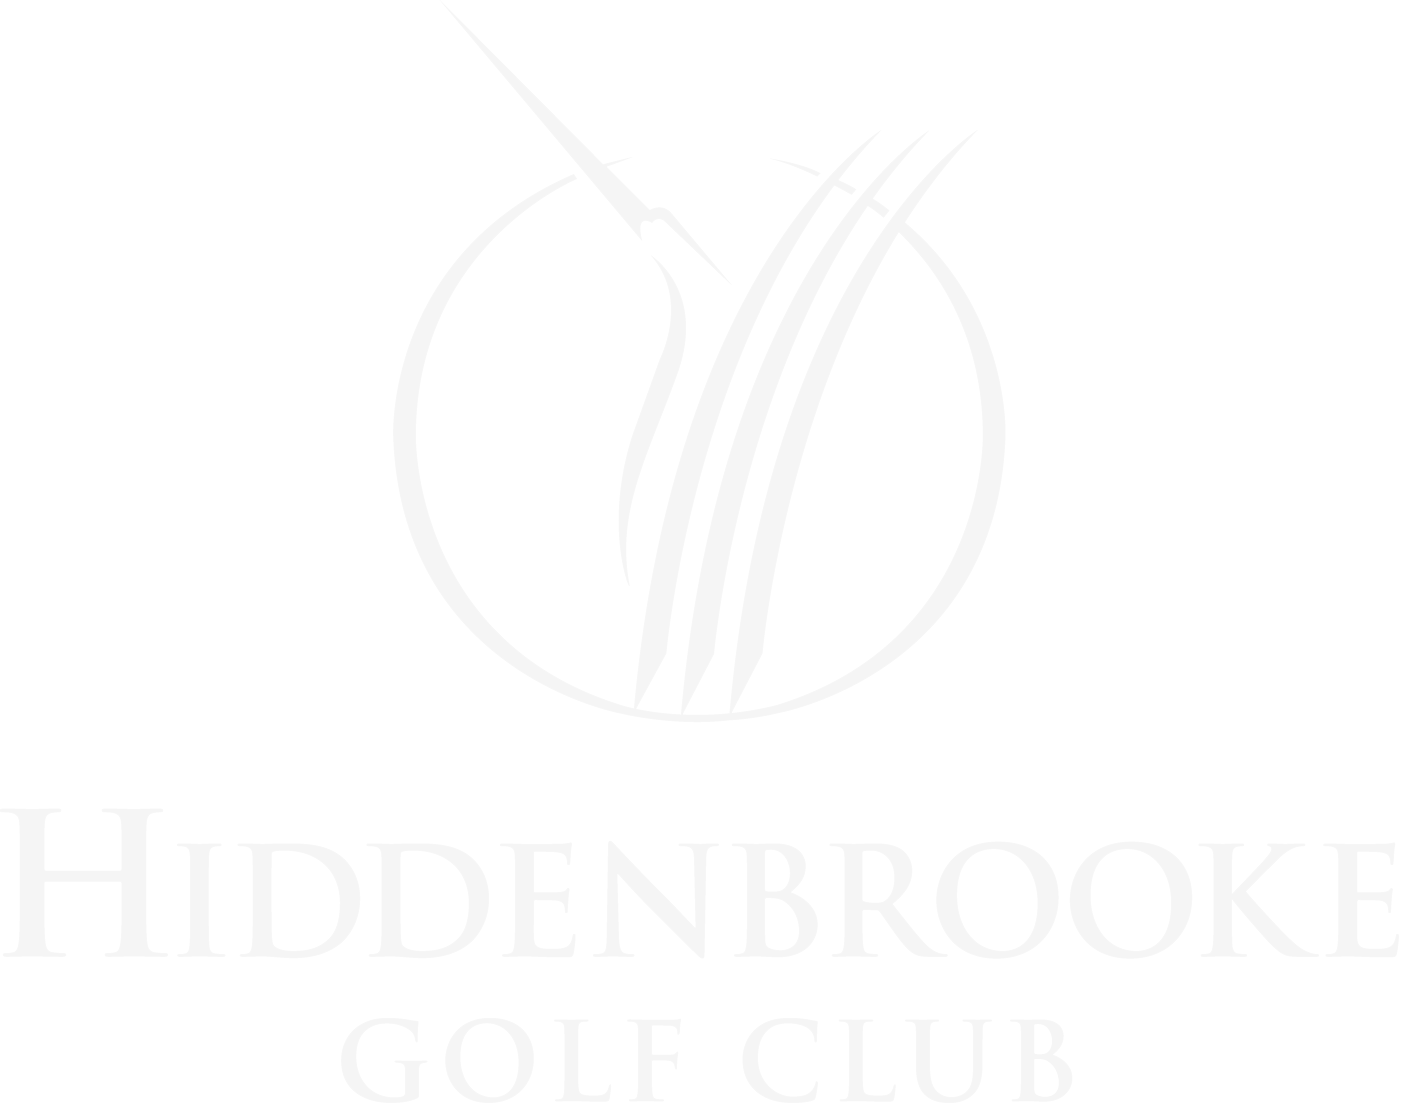 Hiddenbrooke Golf Club logo